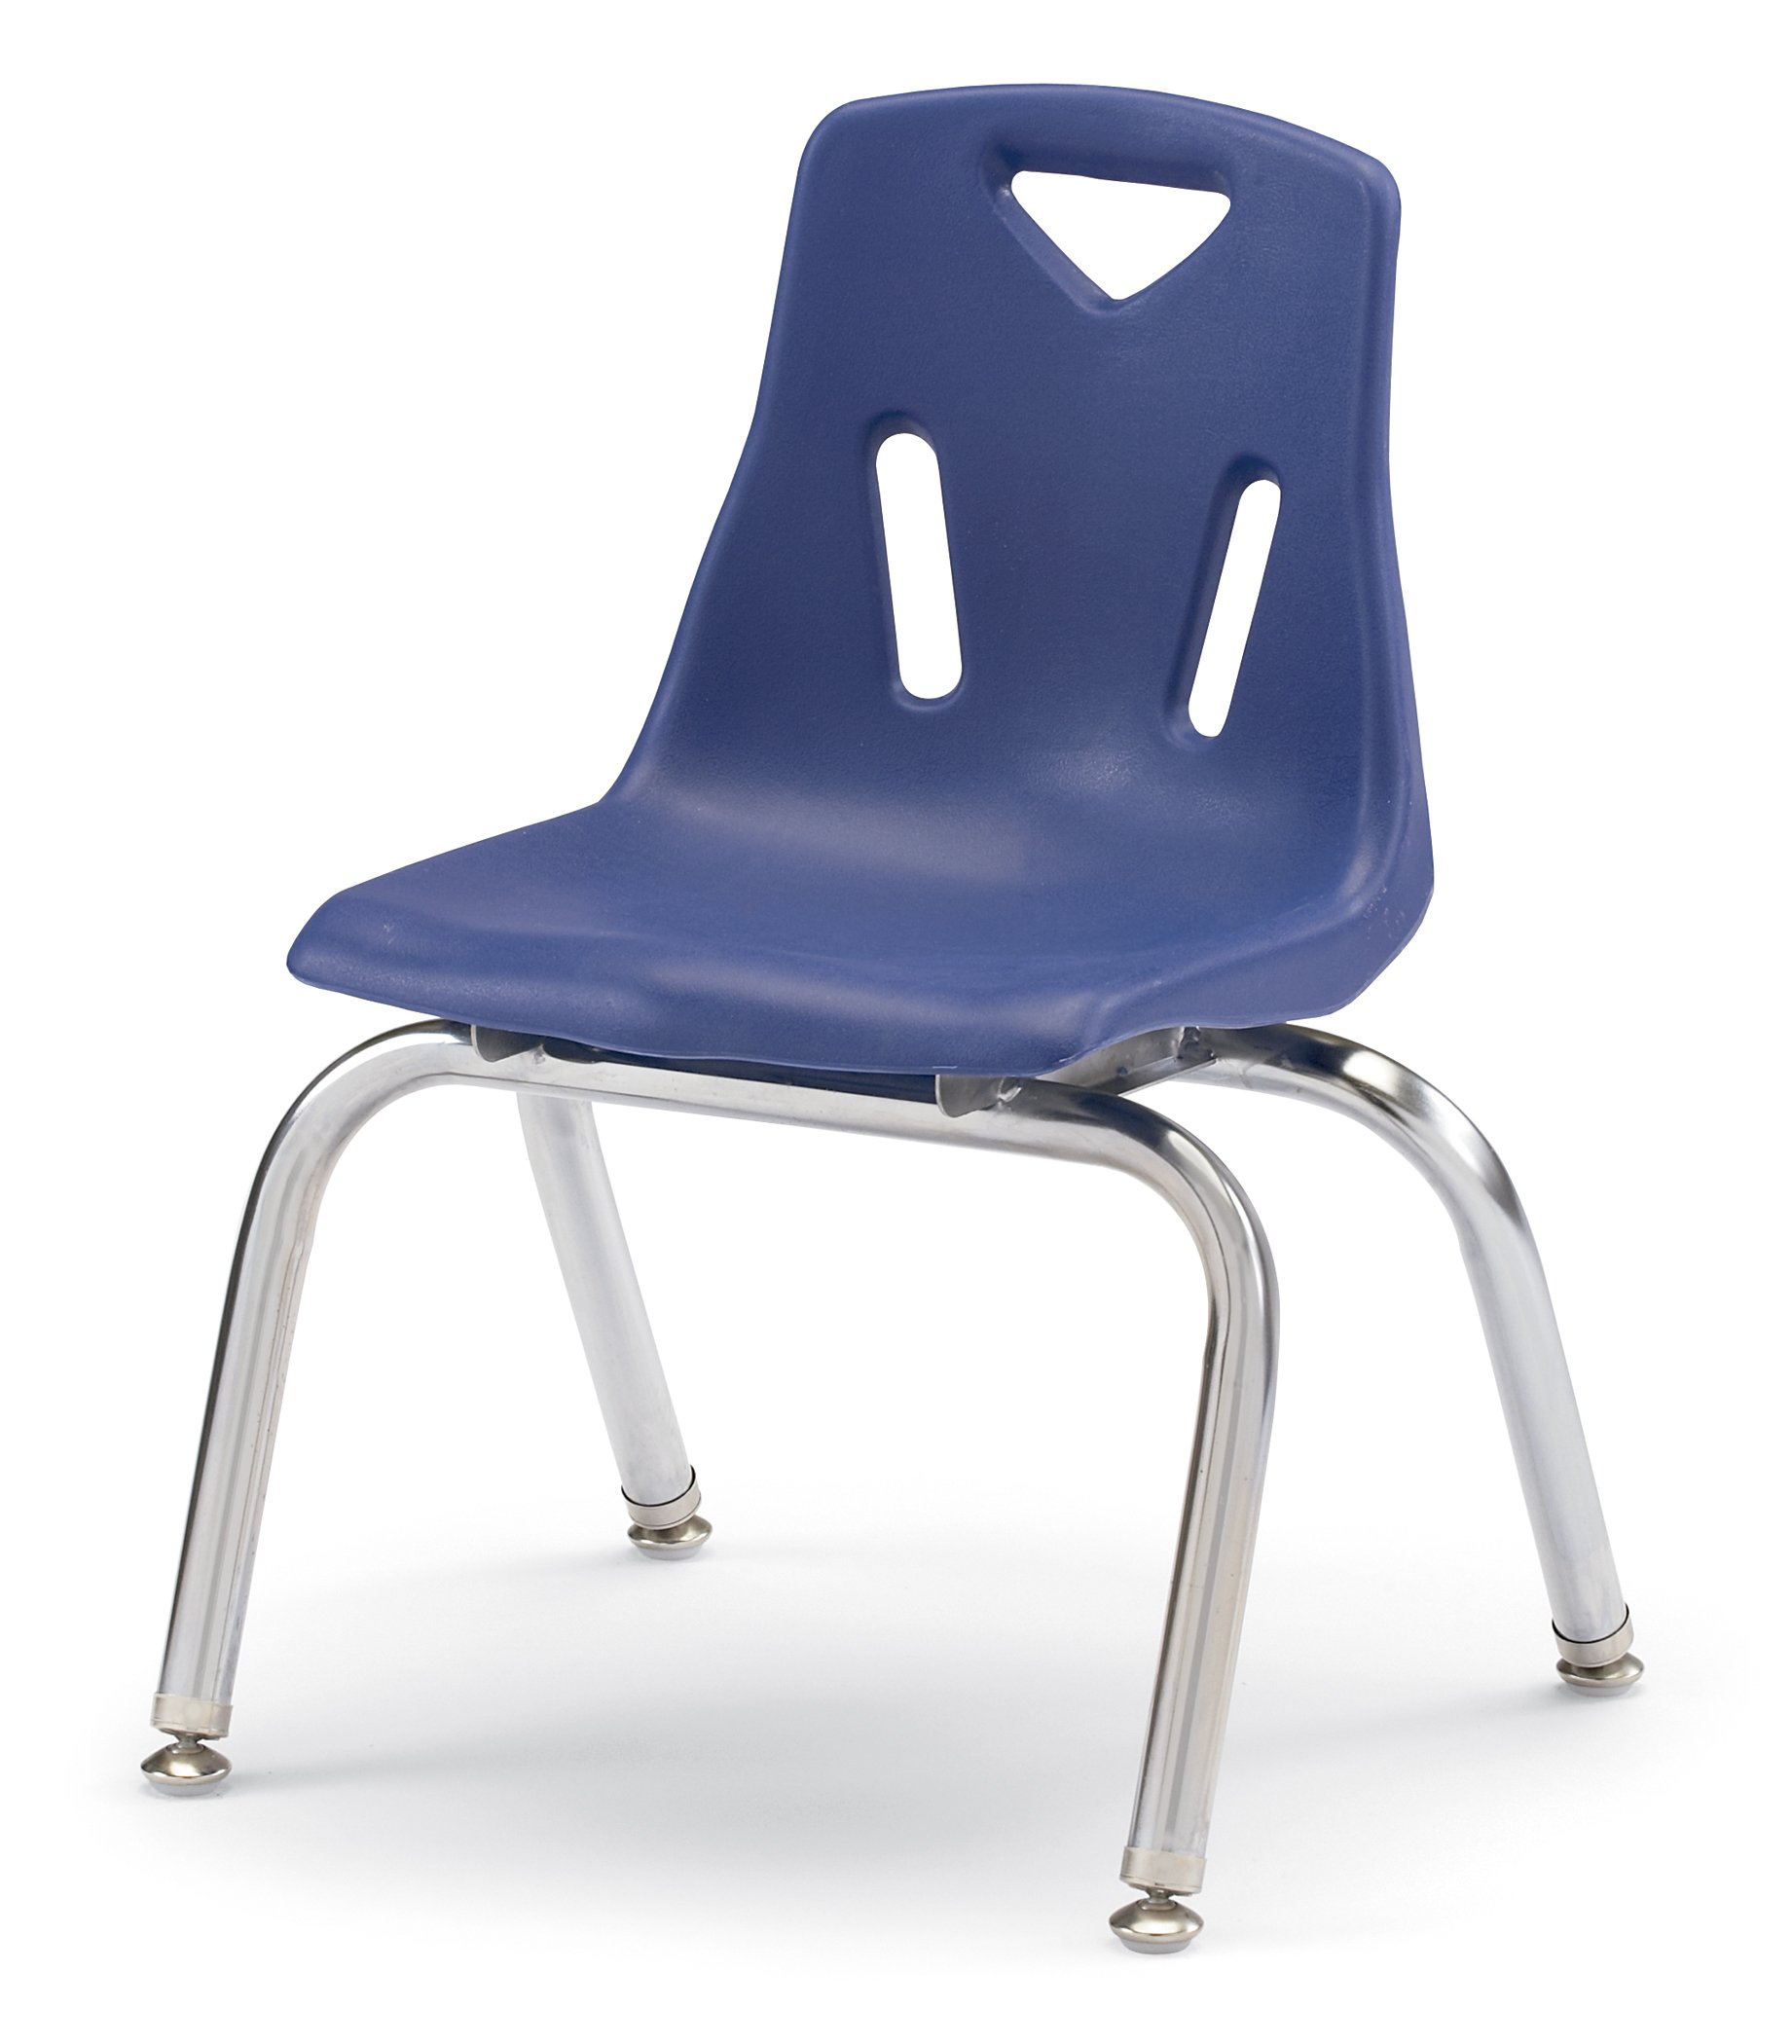 Jonti-Craft Berries 21.5 in. Plastic Kids Chair w Chrome-Plated Legs (18 in. H. - Blue)